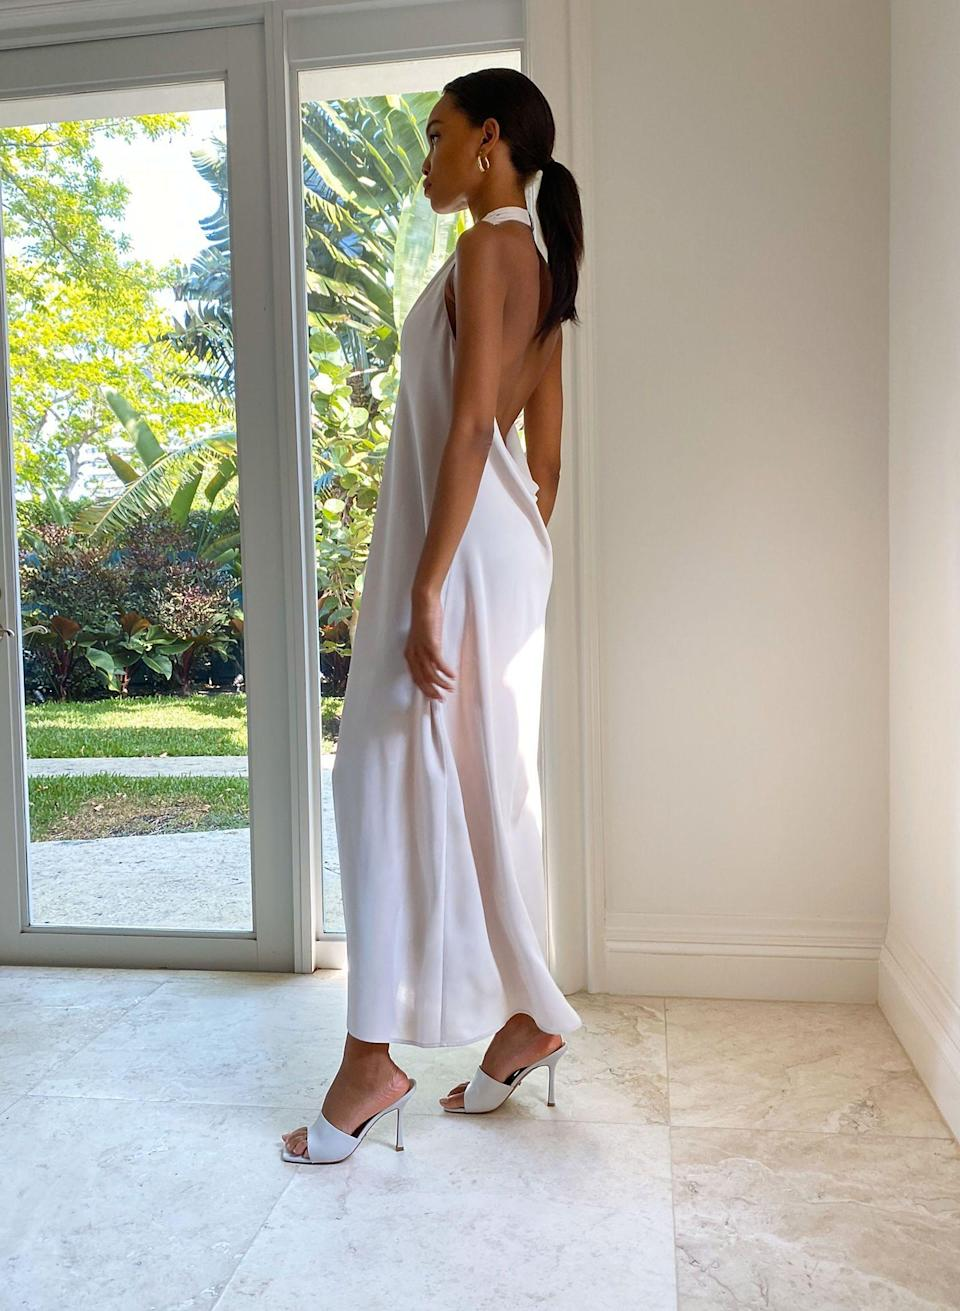 """<p><strong>Babaton</strong></p><p>aritzia.com</p><p><strong>$128.00</strong></p><p><a href=""""https://www.aritzia.com/us/en/product/britannic-dress/78196.html"""" rel=""""nofollow noopener"""" target=""""_blank"""" data-ylk=""""slk:SHOP IT"""" class=""""link rapid-noclick-resp"""">SHOP IT</a></p><p>This halter dress is a great combination of sleek and romantic. The low back and front slit is a sexy option for any of brides-to-be looking for a bridal shower or rehearsal dress. </p>"""